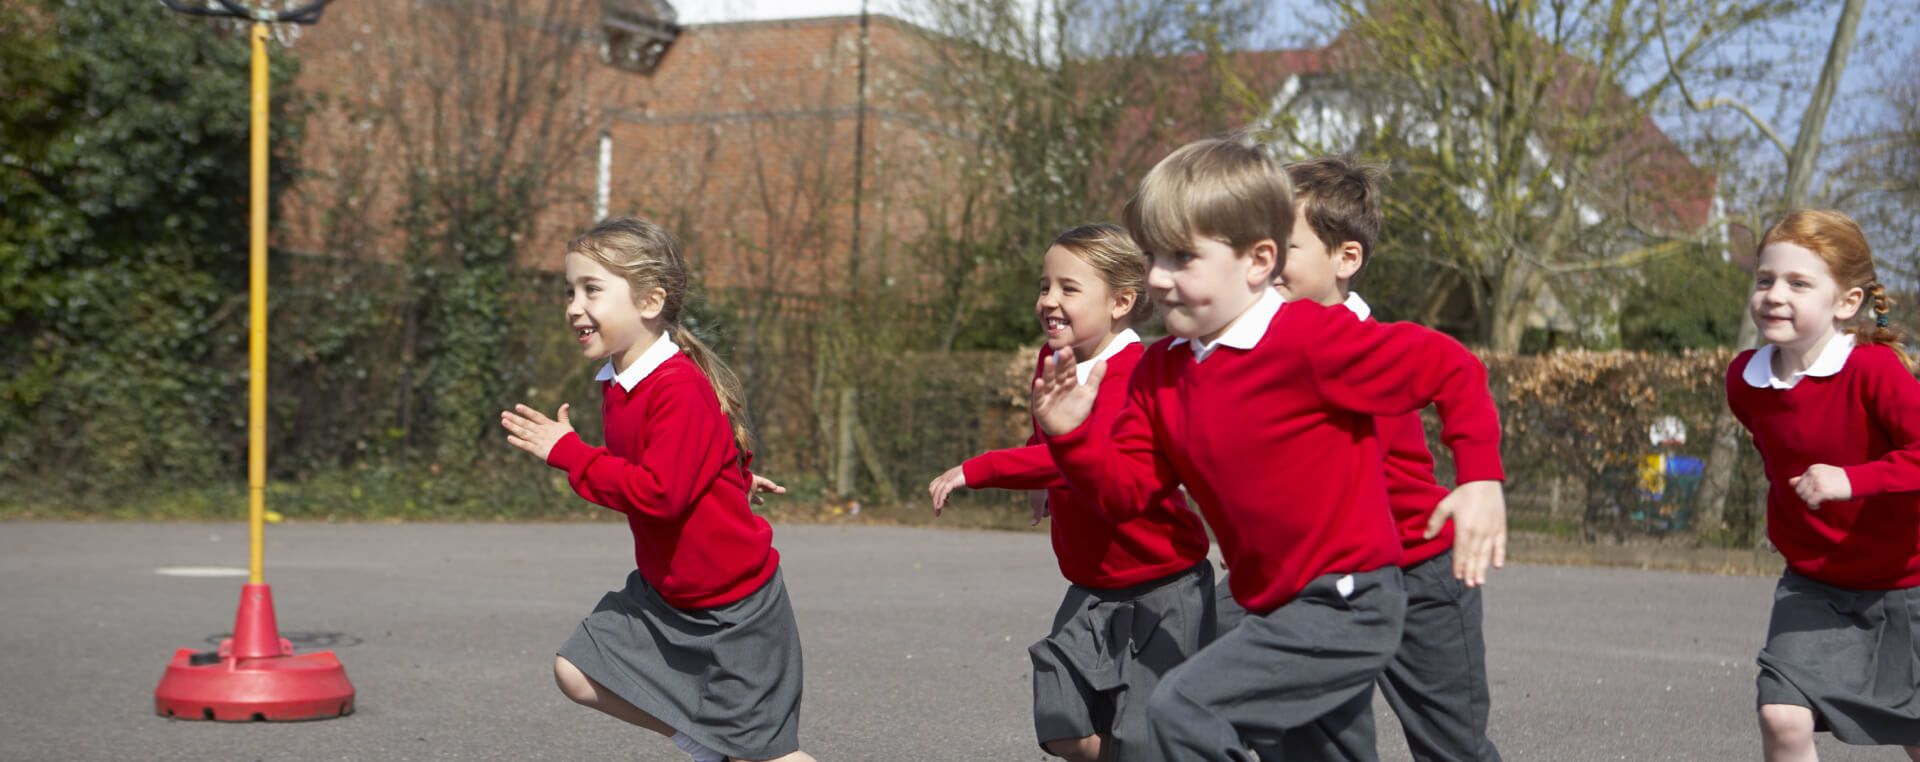 A group of school children in red jumpers running across the school's playground.